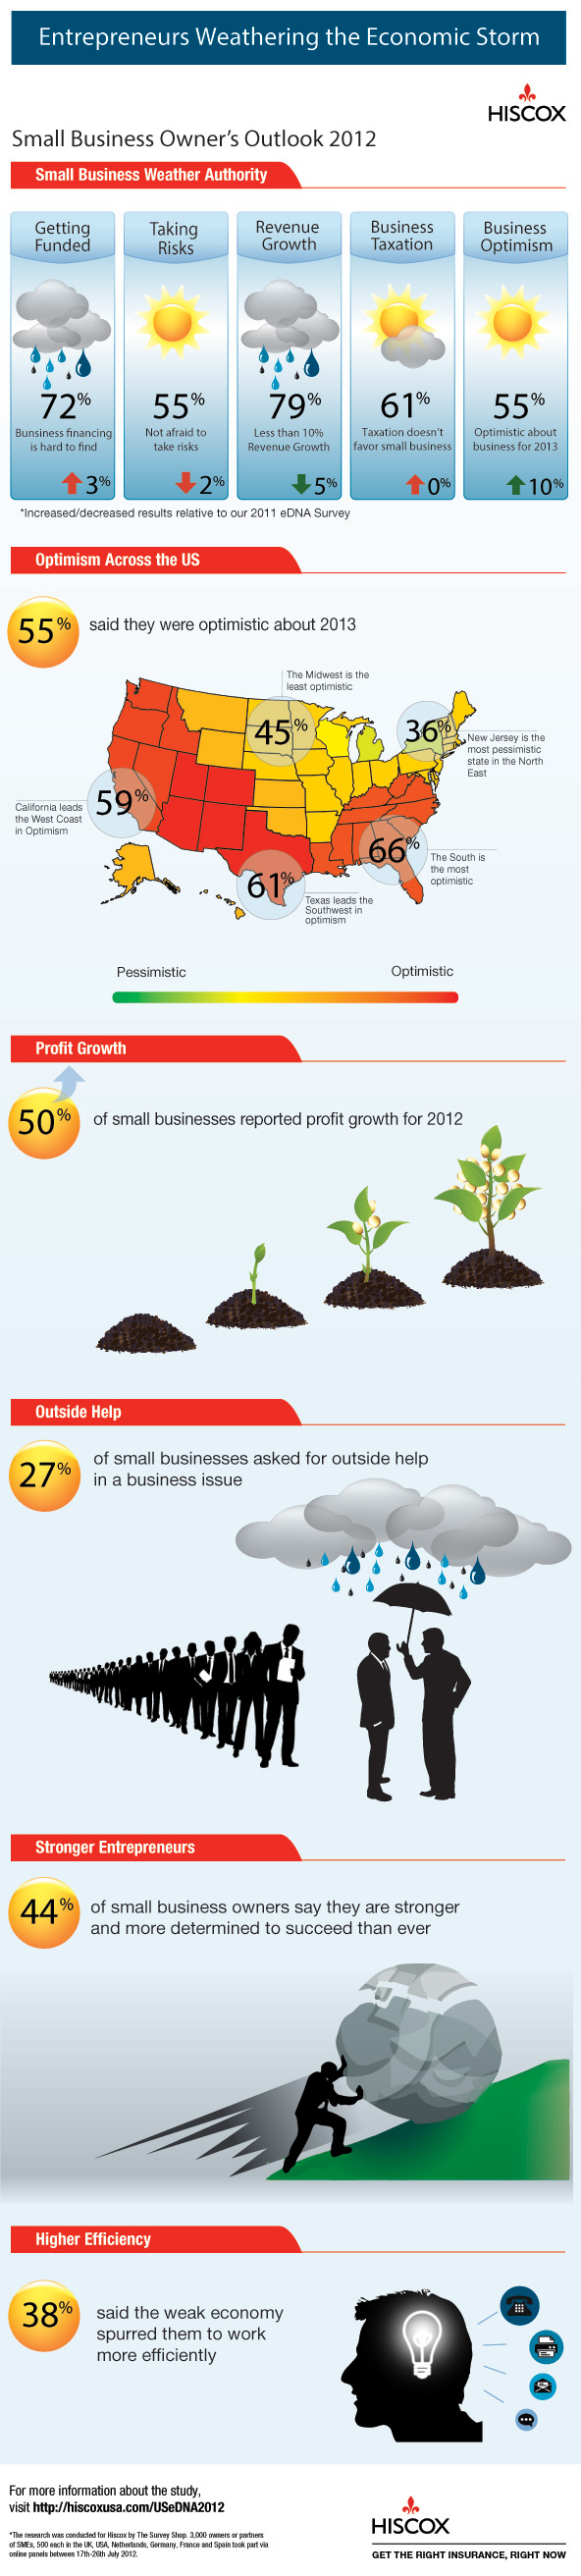 Small Business Owners Outlook 2012